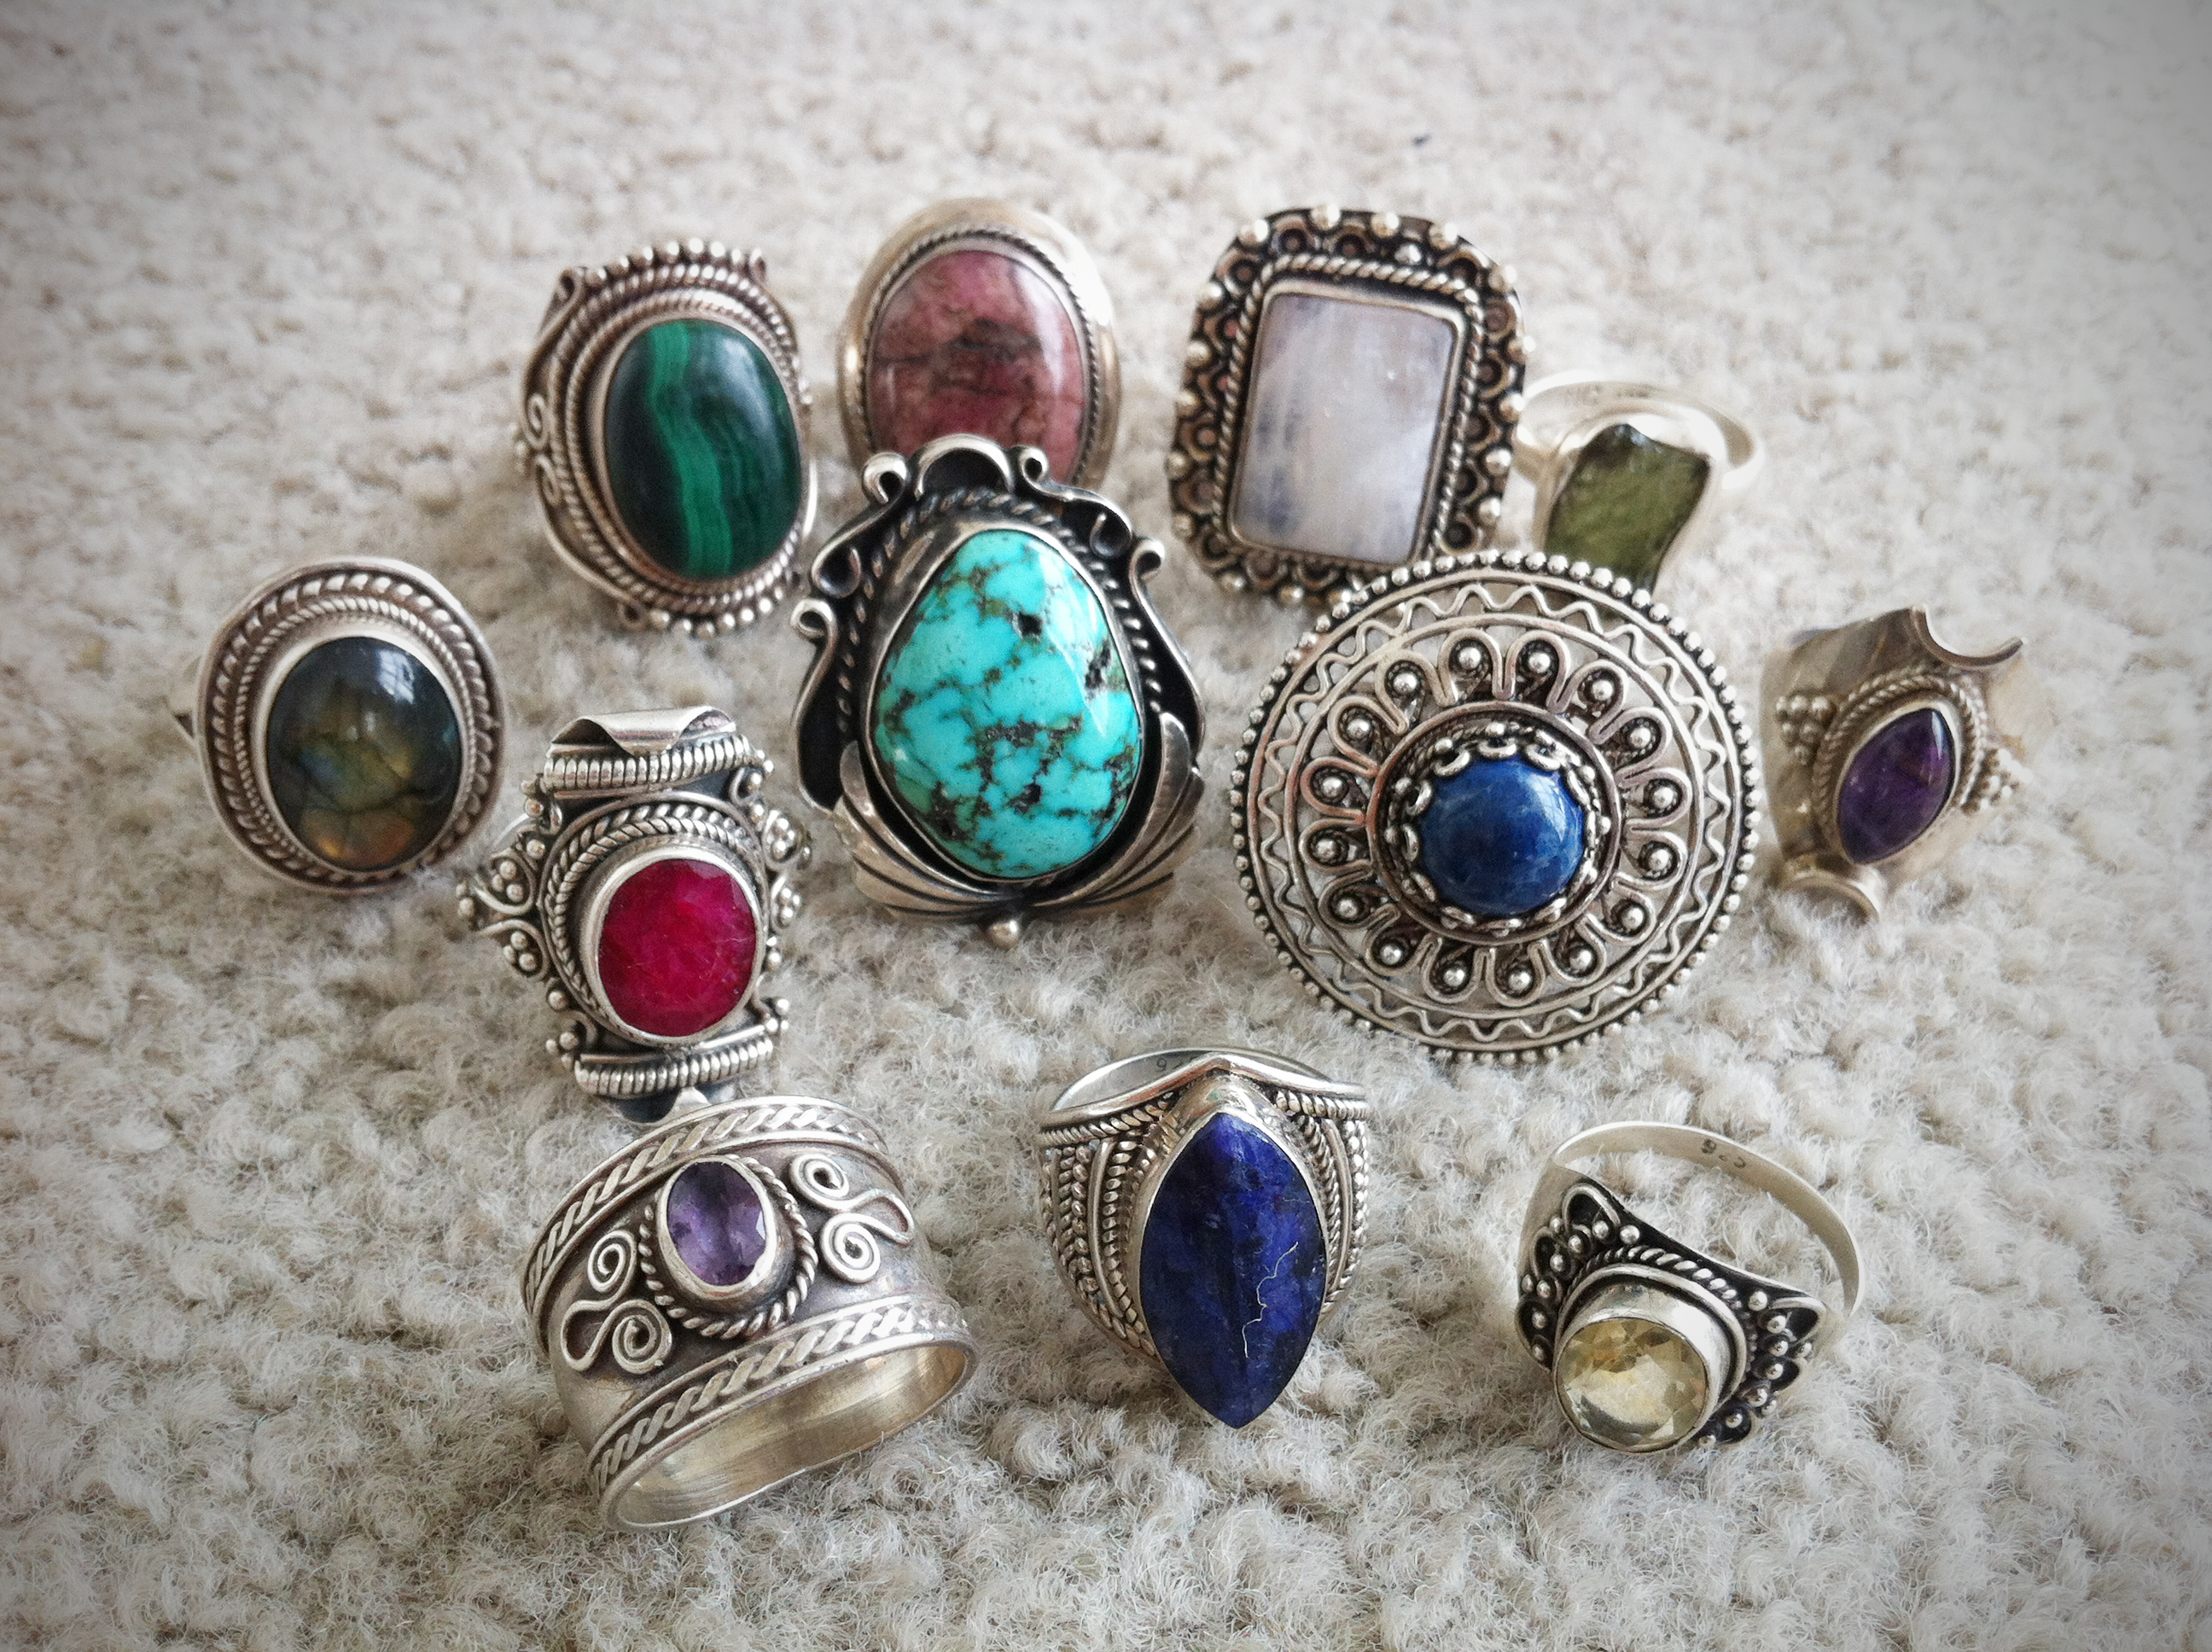 Crystal healing gemstone jewelry collection holistic habits i love collecting sterling silver gemstone jewelry i especially love collecting beautiful bold vintage rings i get so excited when i glance down at mozeypictures Gallery